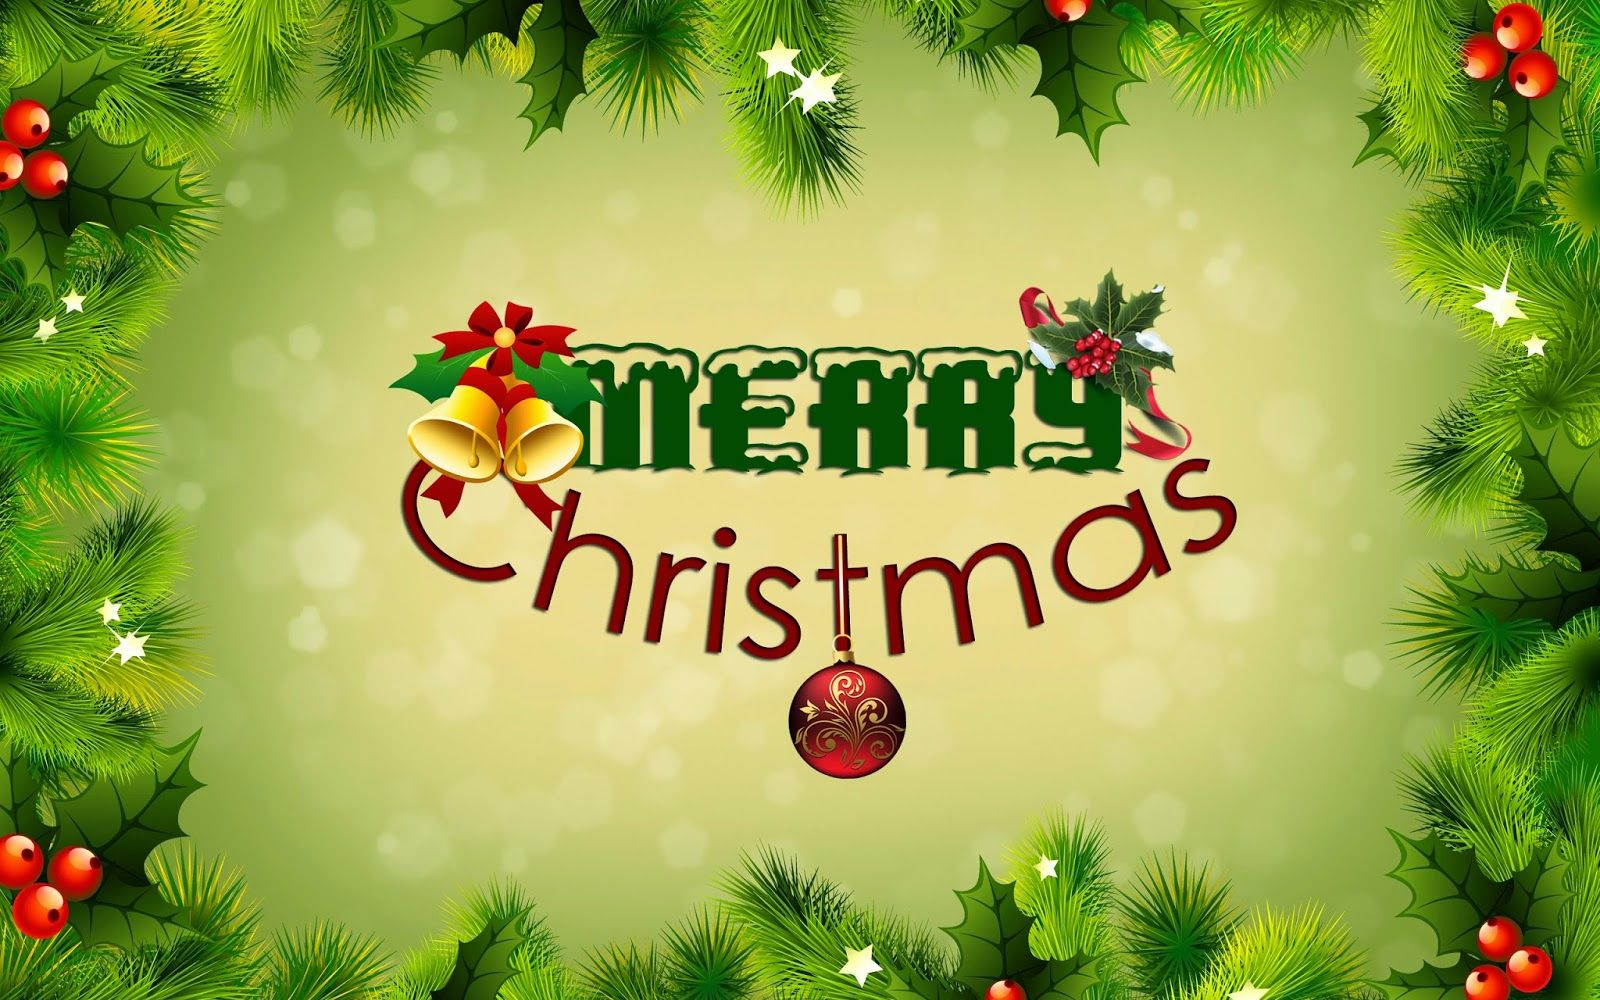 Happy Merry Christmas Images, 1080p HD wallpapers. Get the